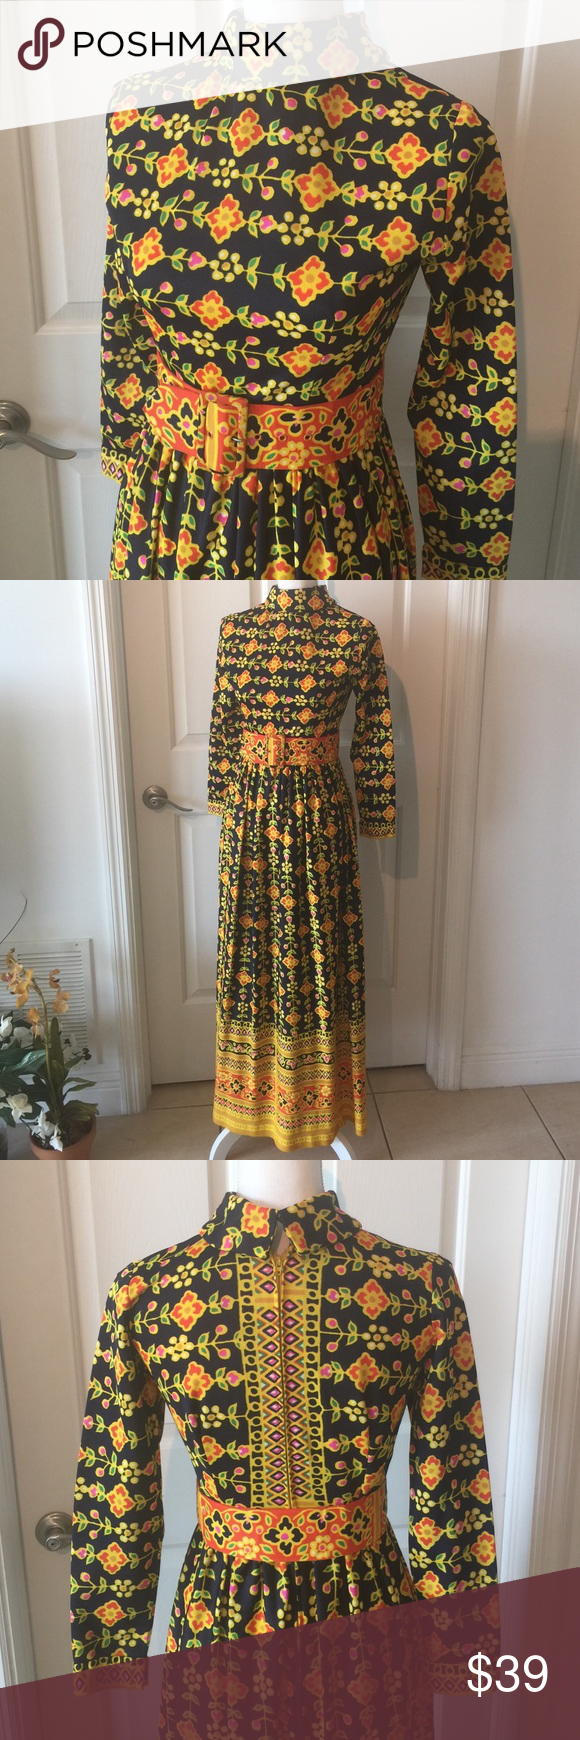 Vintage s patterned high collar maxi dress really rad s